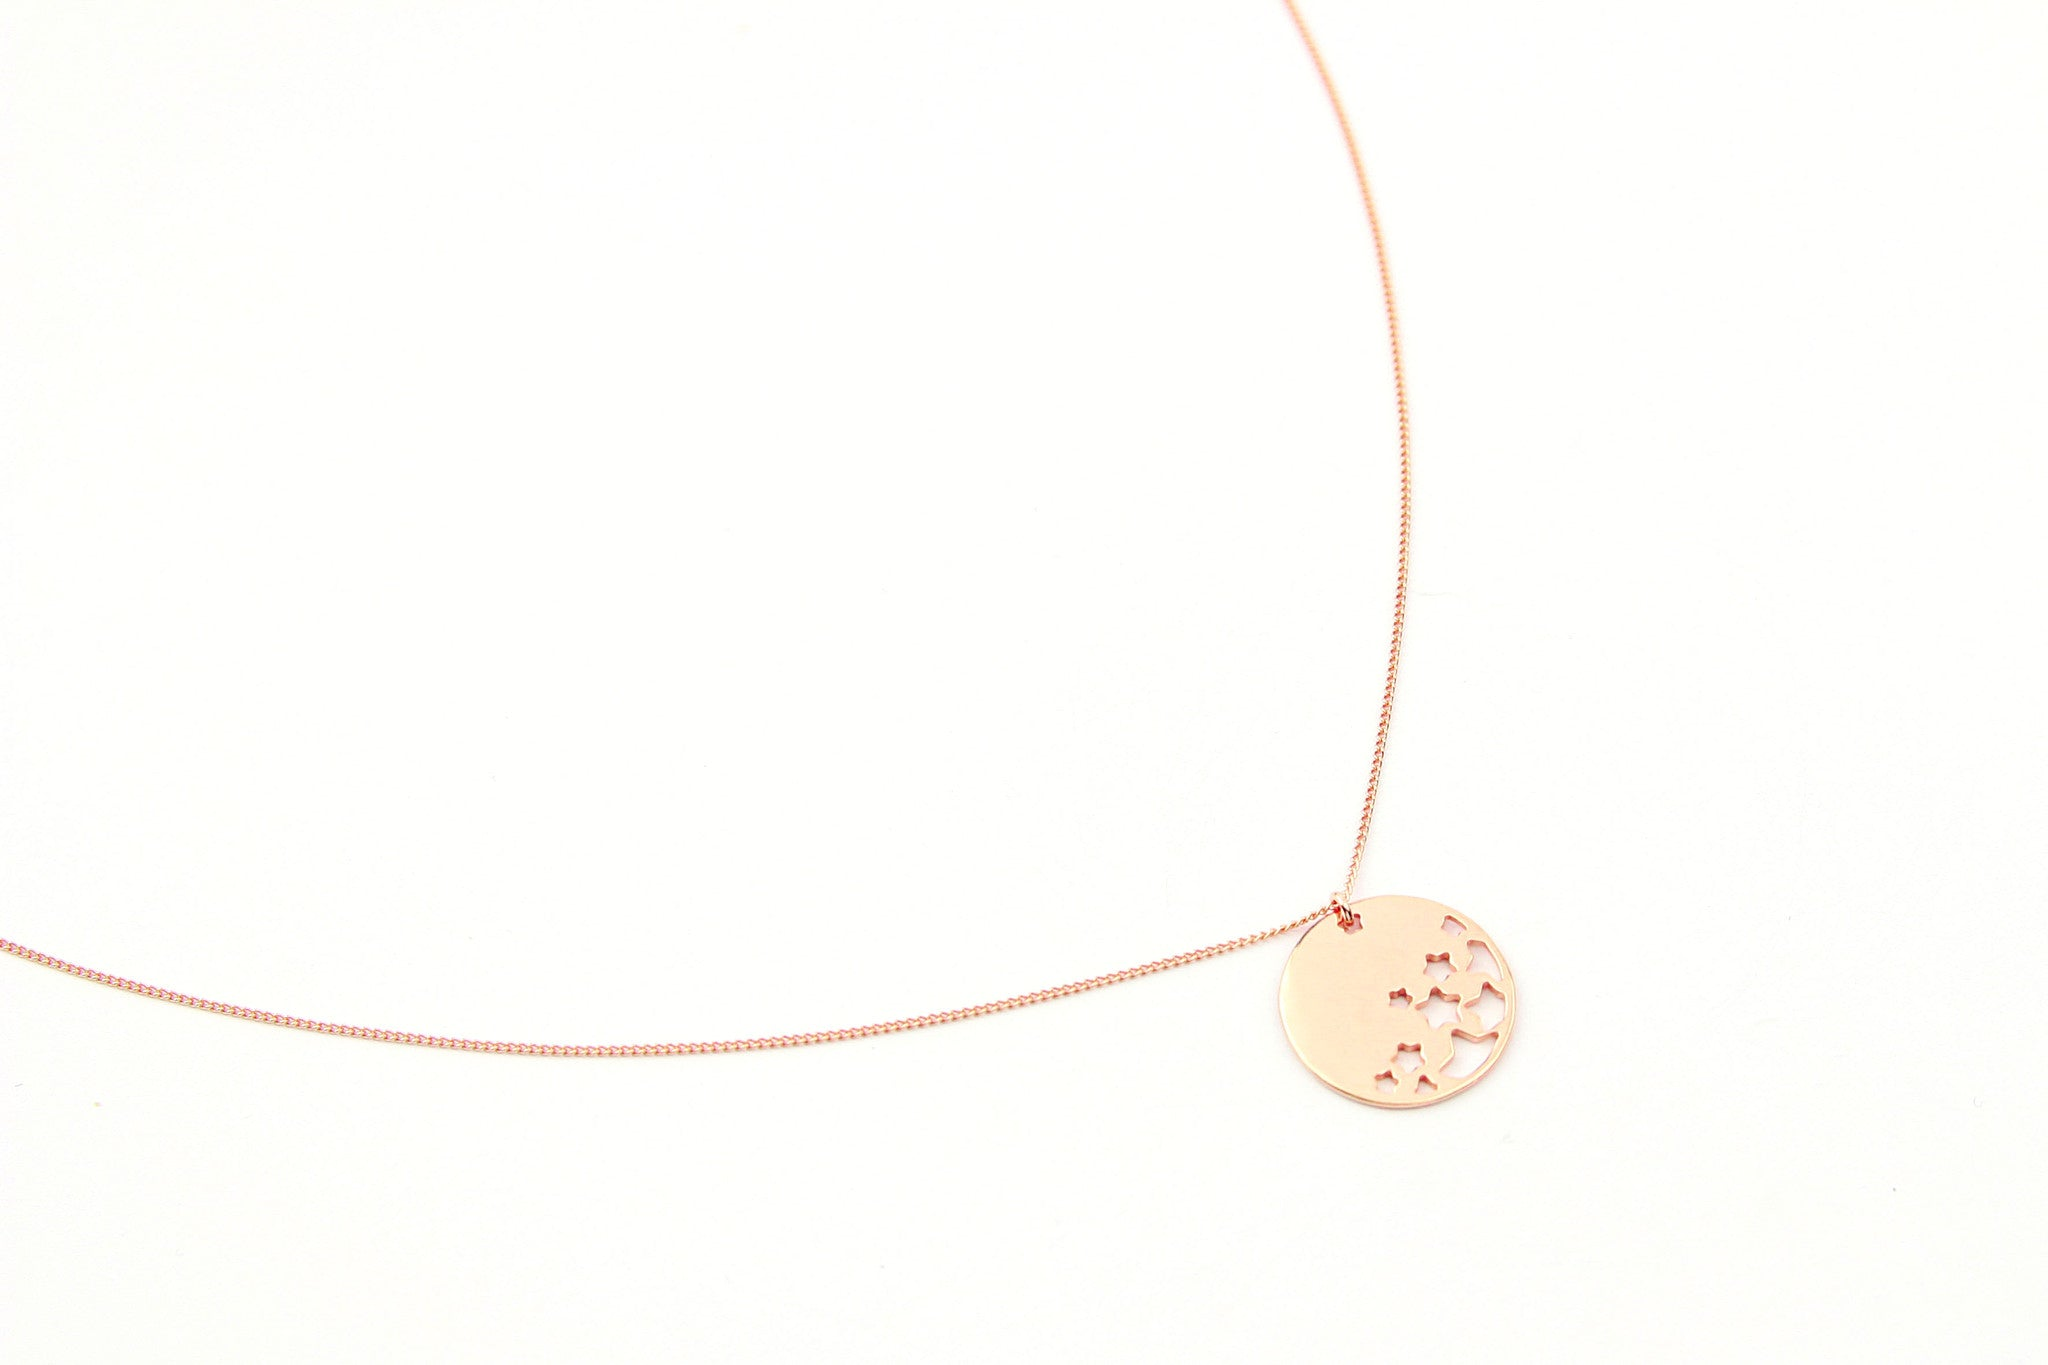 jewelberry necklace kette night sky curb chain rose gold plated sterling silver fine jewelry handmade with love fairtrade